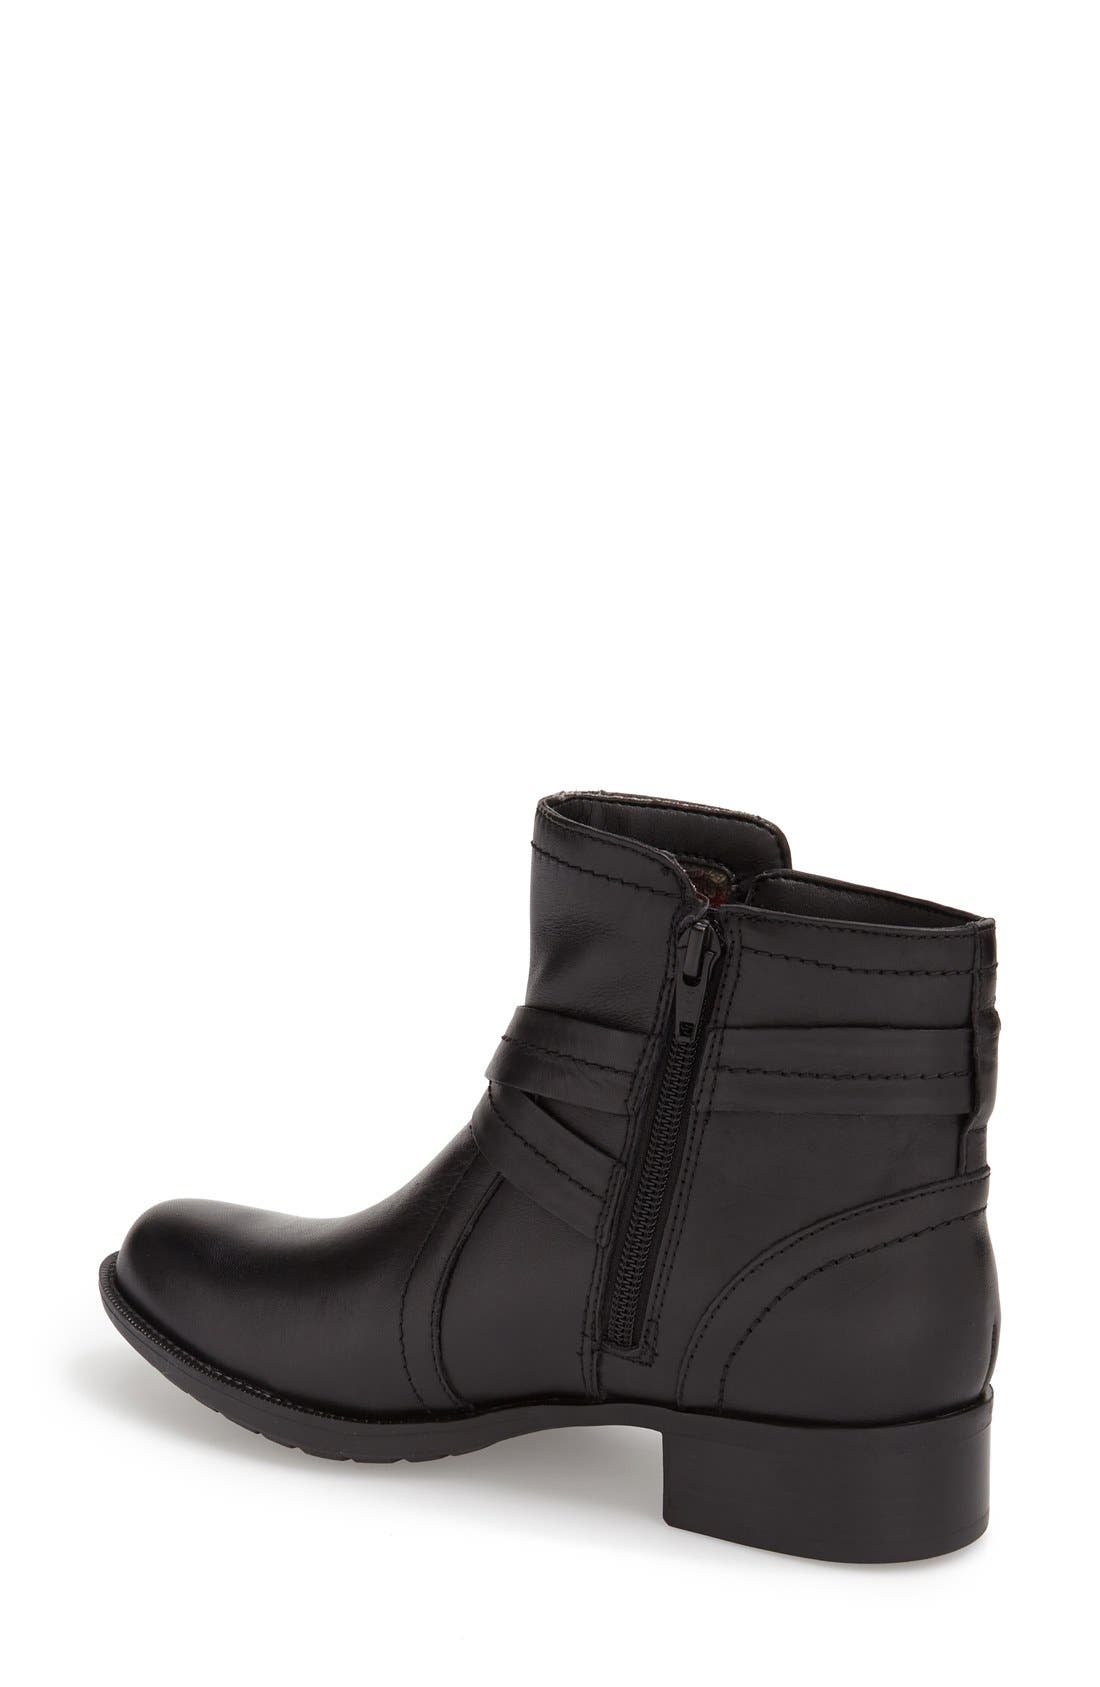 Alternate Image 2  - Rockport Cobb Hill 'Caroline' Waterproof Boot (Women)